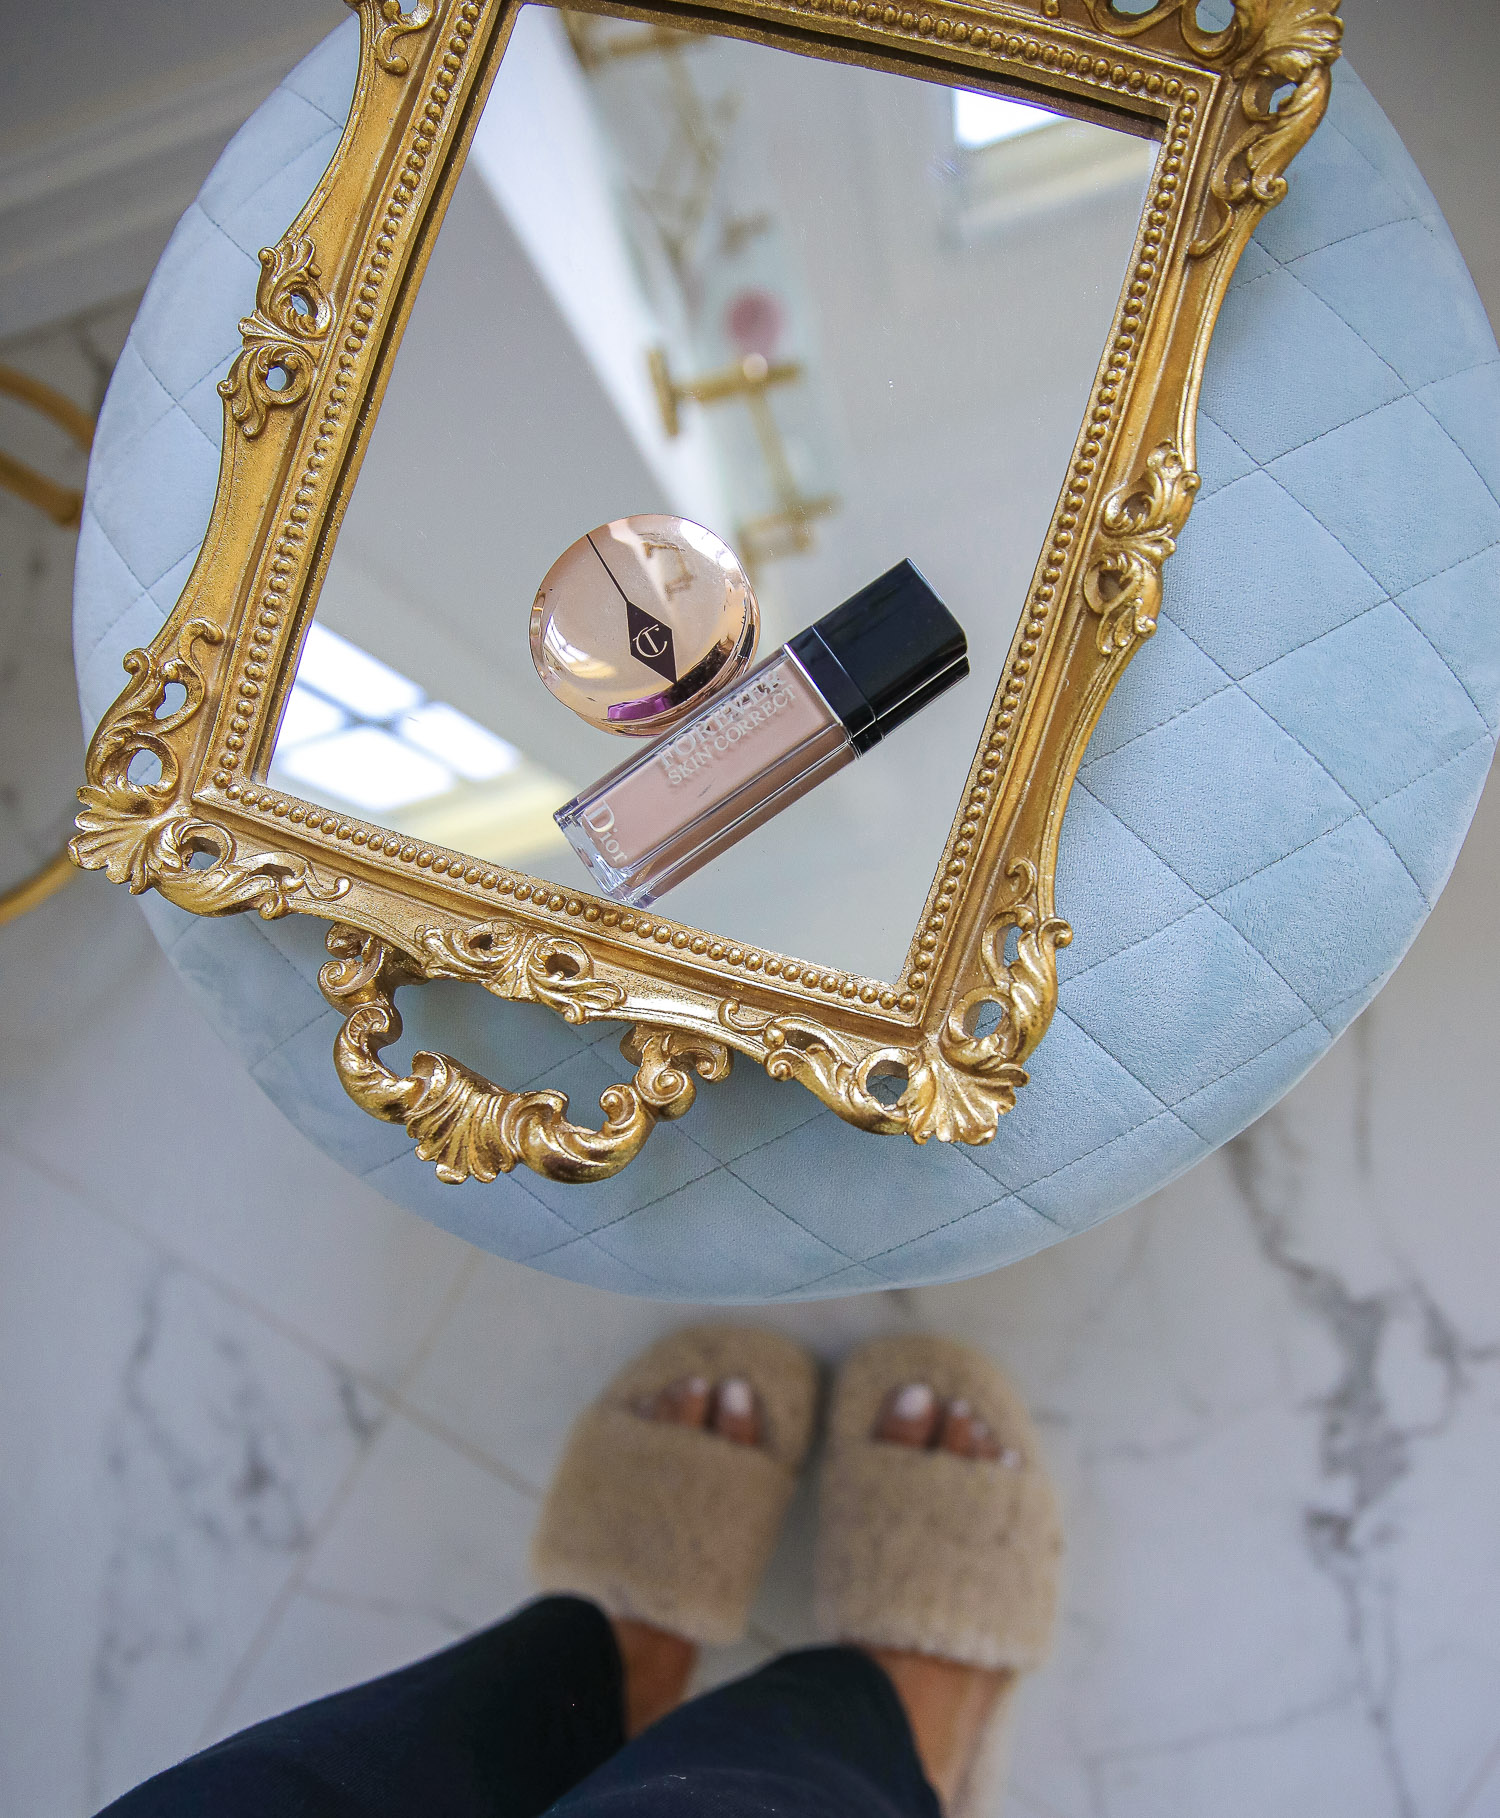 nordstrom beauty must haves fall 2021, sisley pore minimizer review, sisley blur powder review, sisley hyaluronic acid, emily gemma beauty must haves, hoola bronzer palette | Beauty Favorites by popular US beauty blog, The Sweetest Thing: image of a bottle of foundation and a bronzer compact on a mirrored gold frame tray.